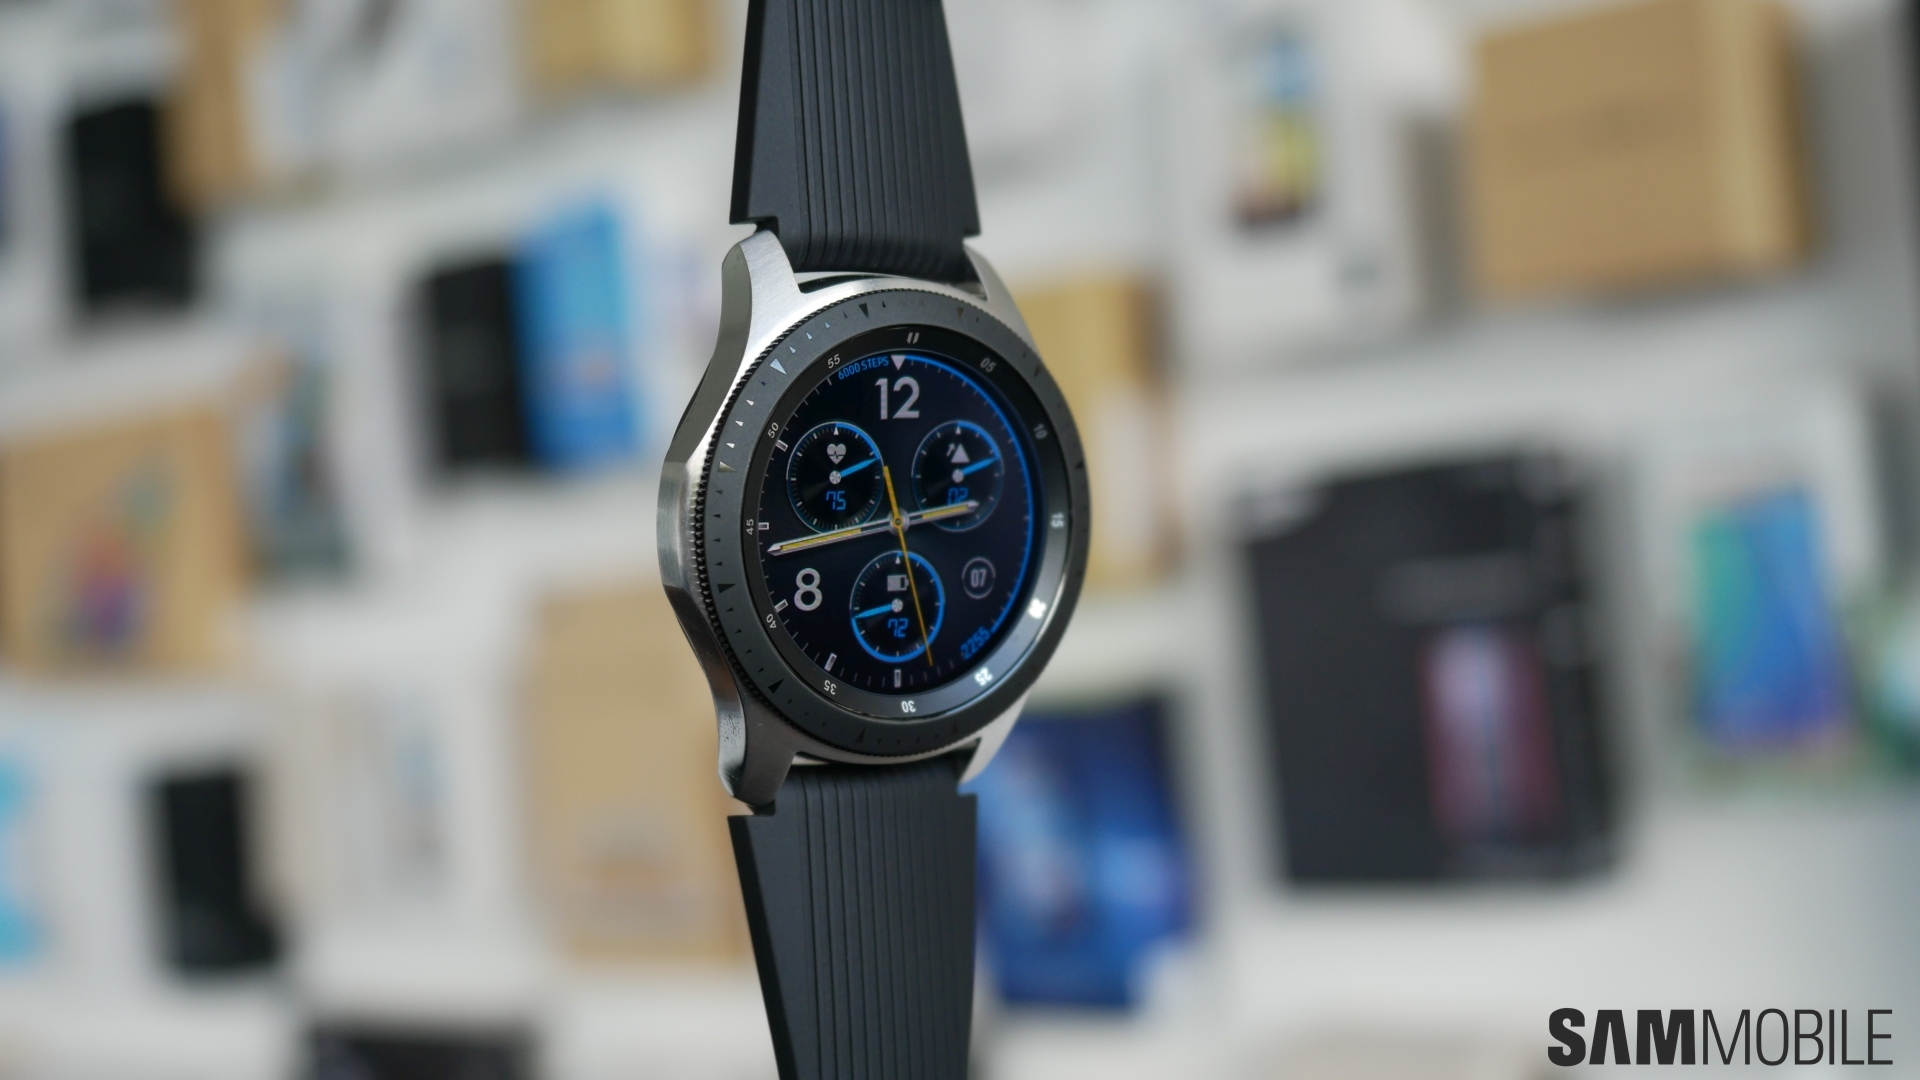 No fix in sight for the Galaxy Watch issues irking many - SamMobile